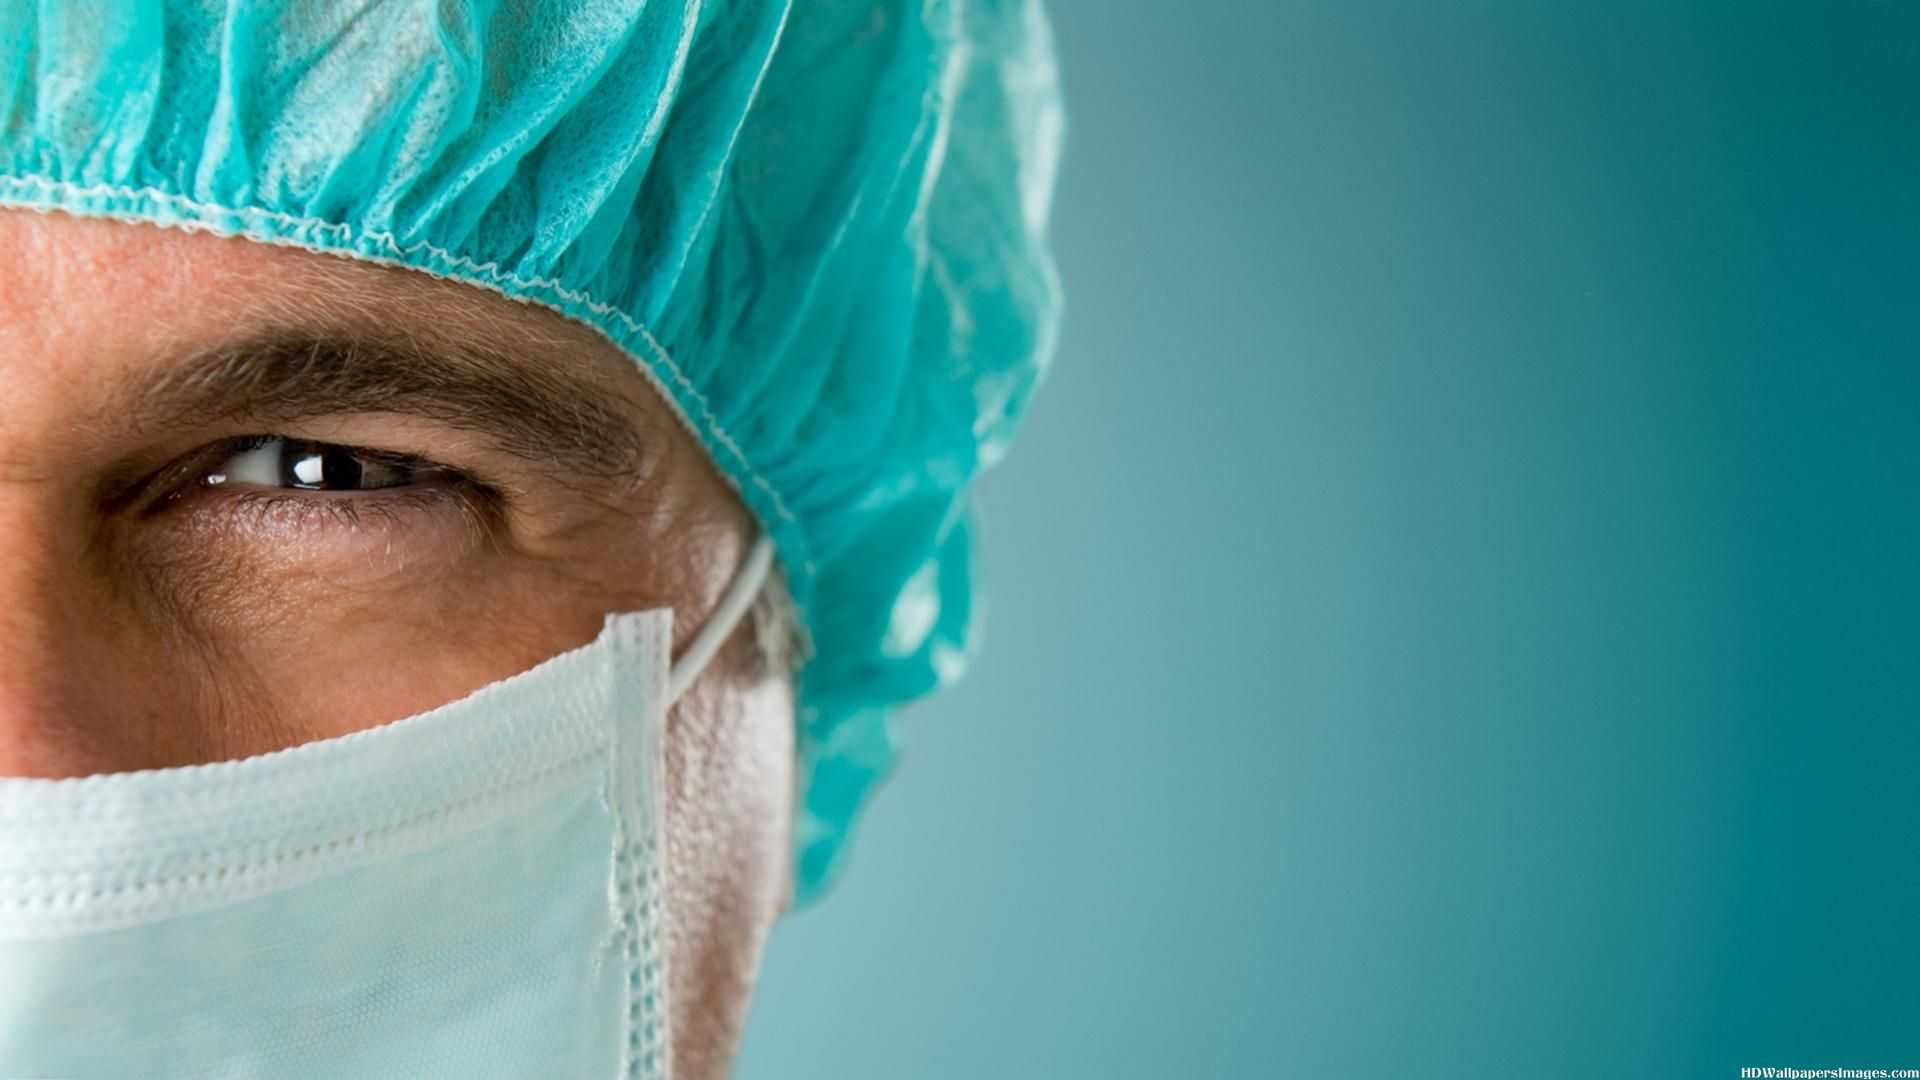 Doctor-Surgeon-With-Mask-Images